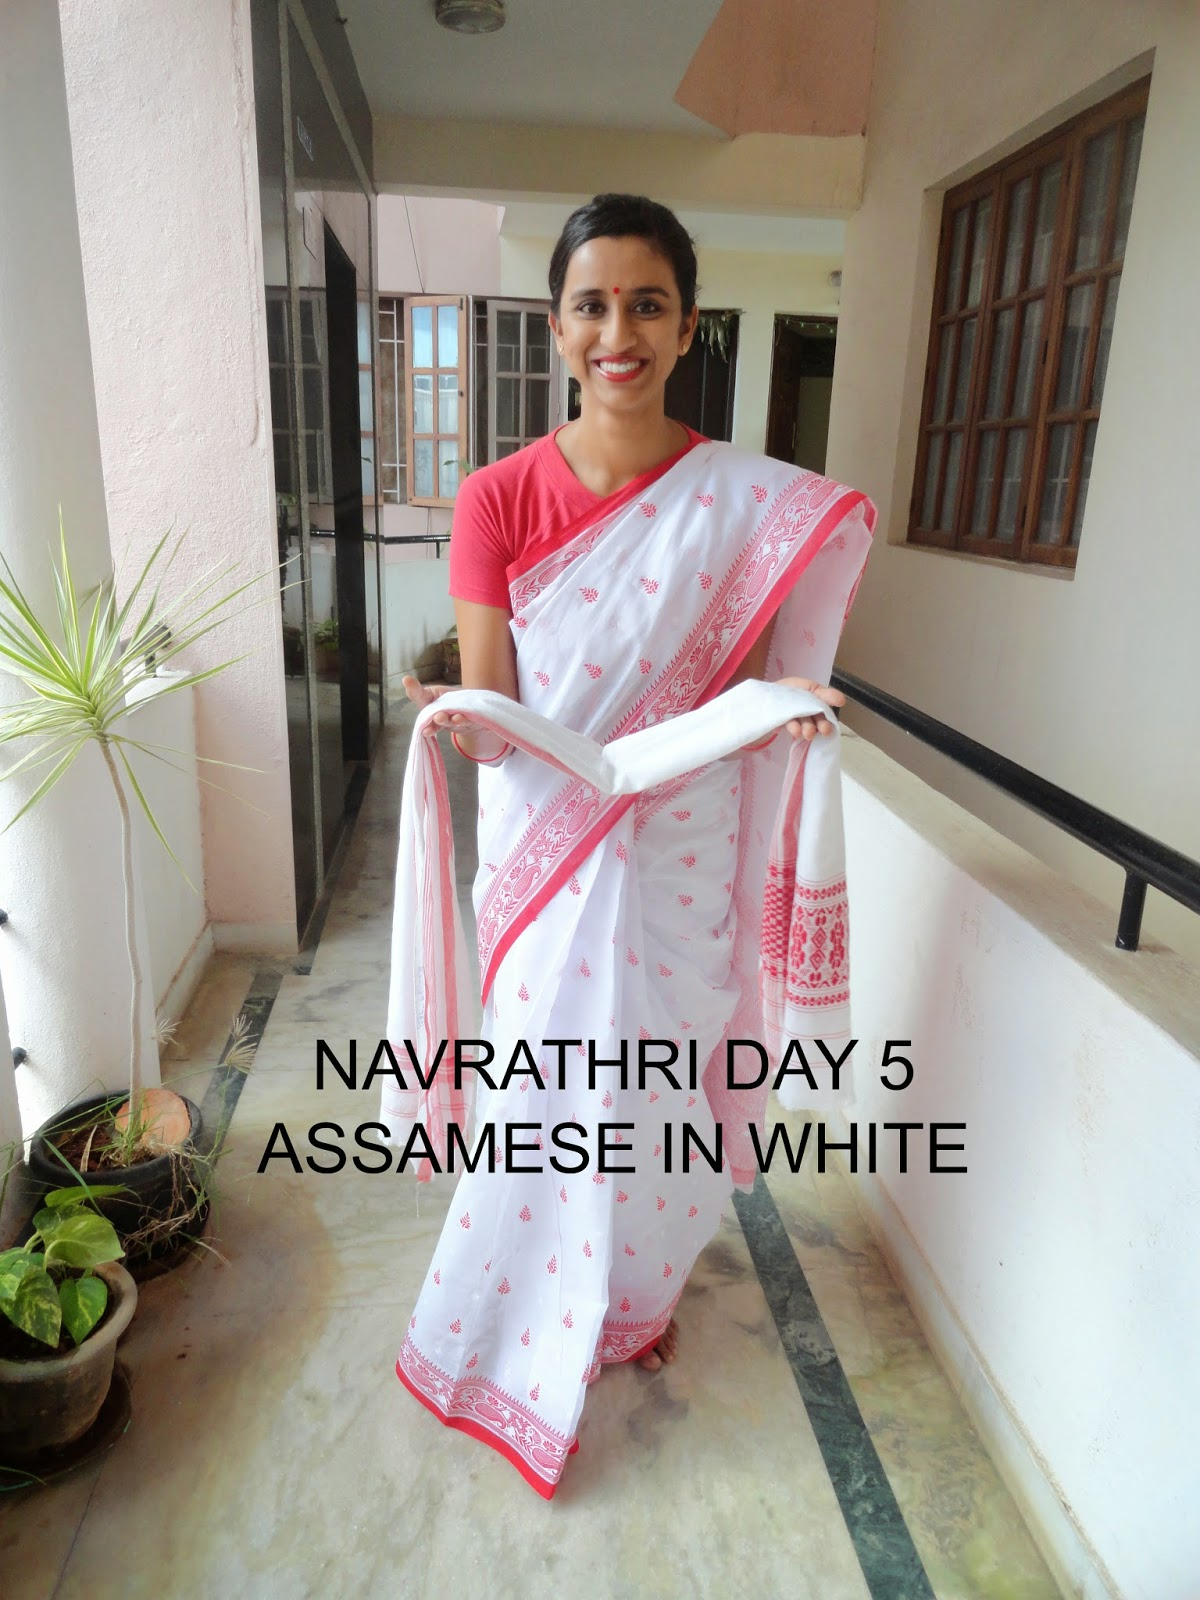 Navrathri Day 5: The tee shirt and Assamese in White image